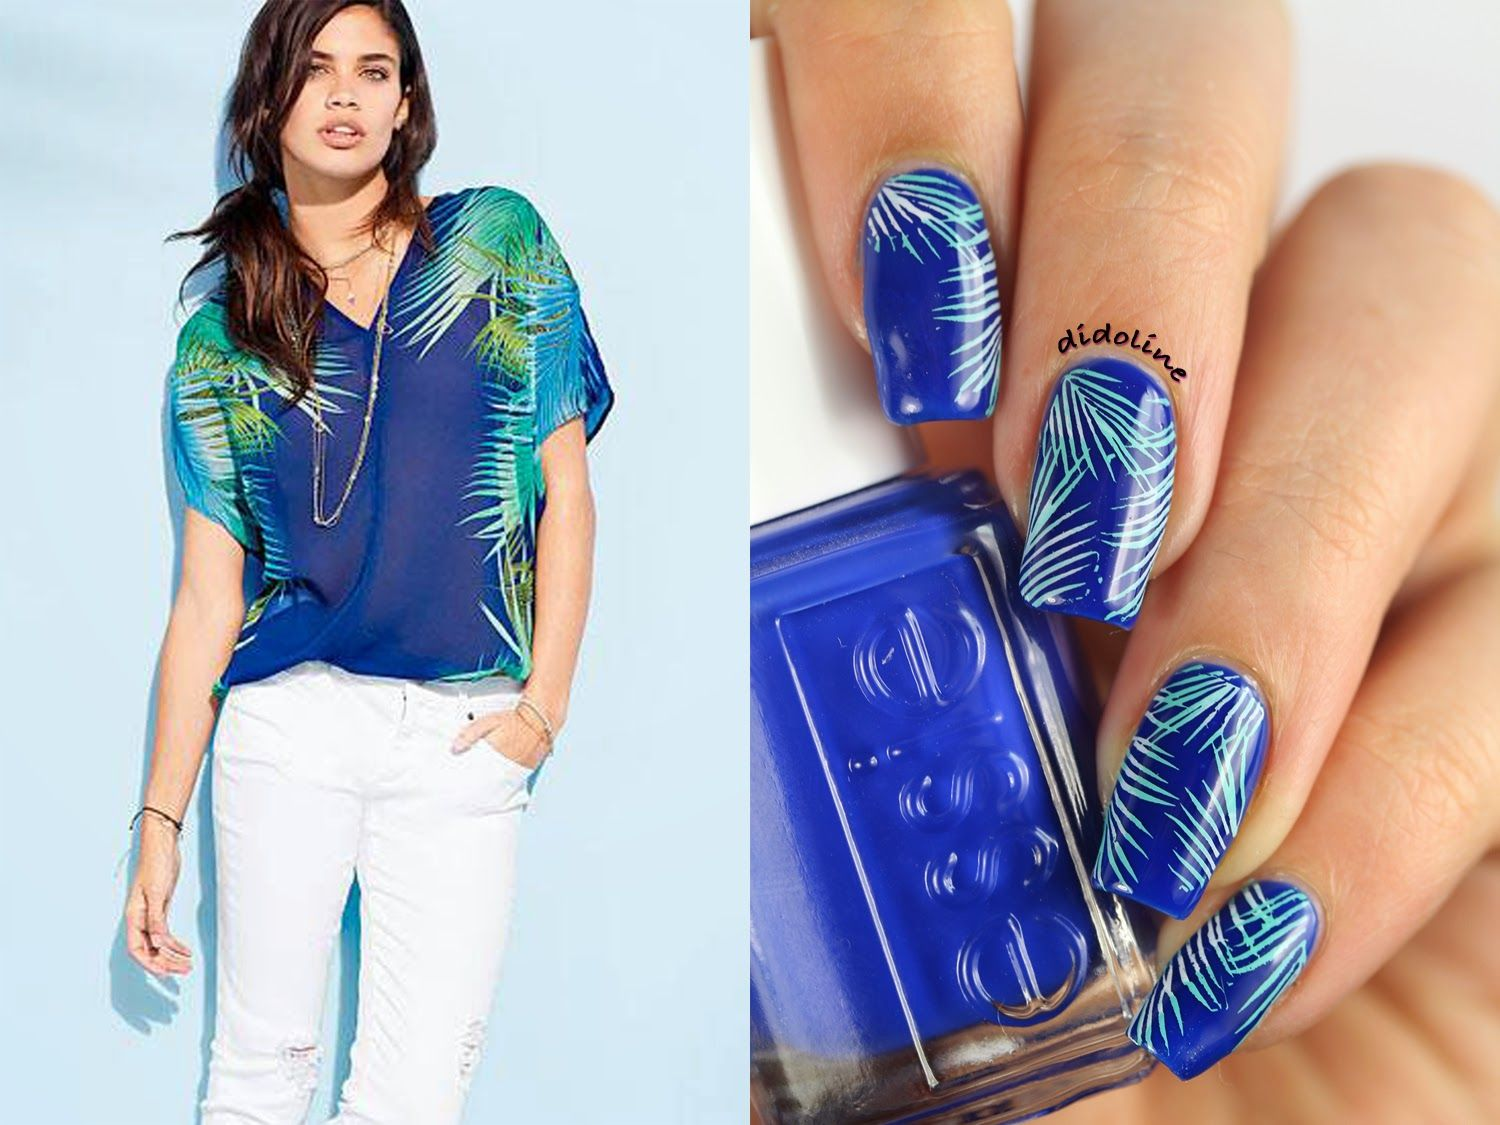 Fashion Friday - Inspired by Victoria's Secret #nails #fashionfriday #victoriassecret